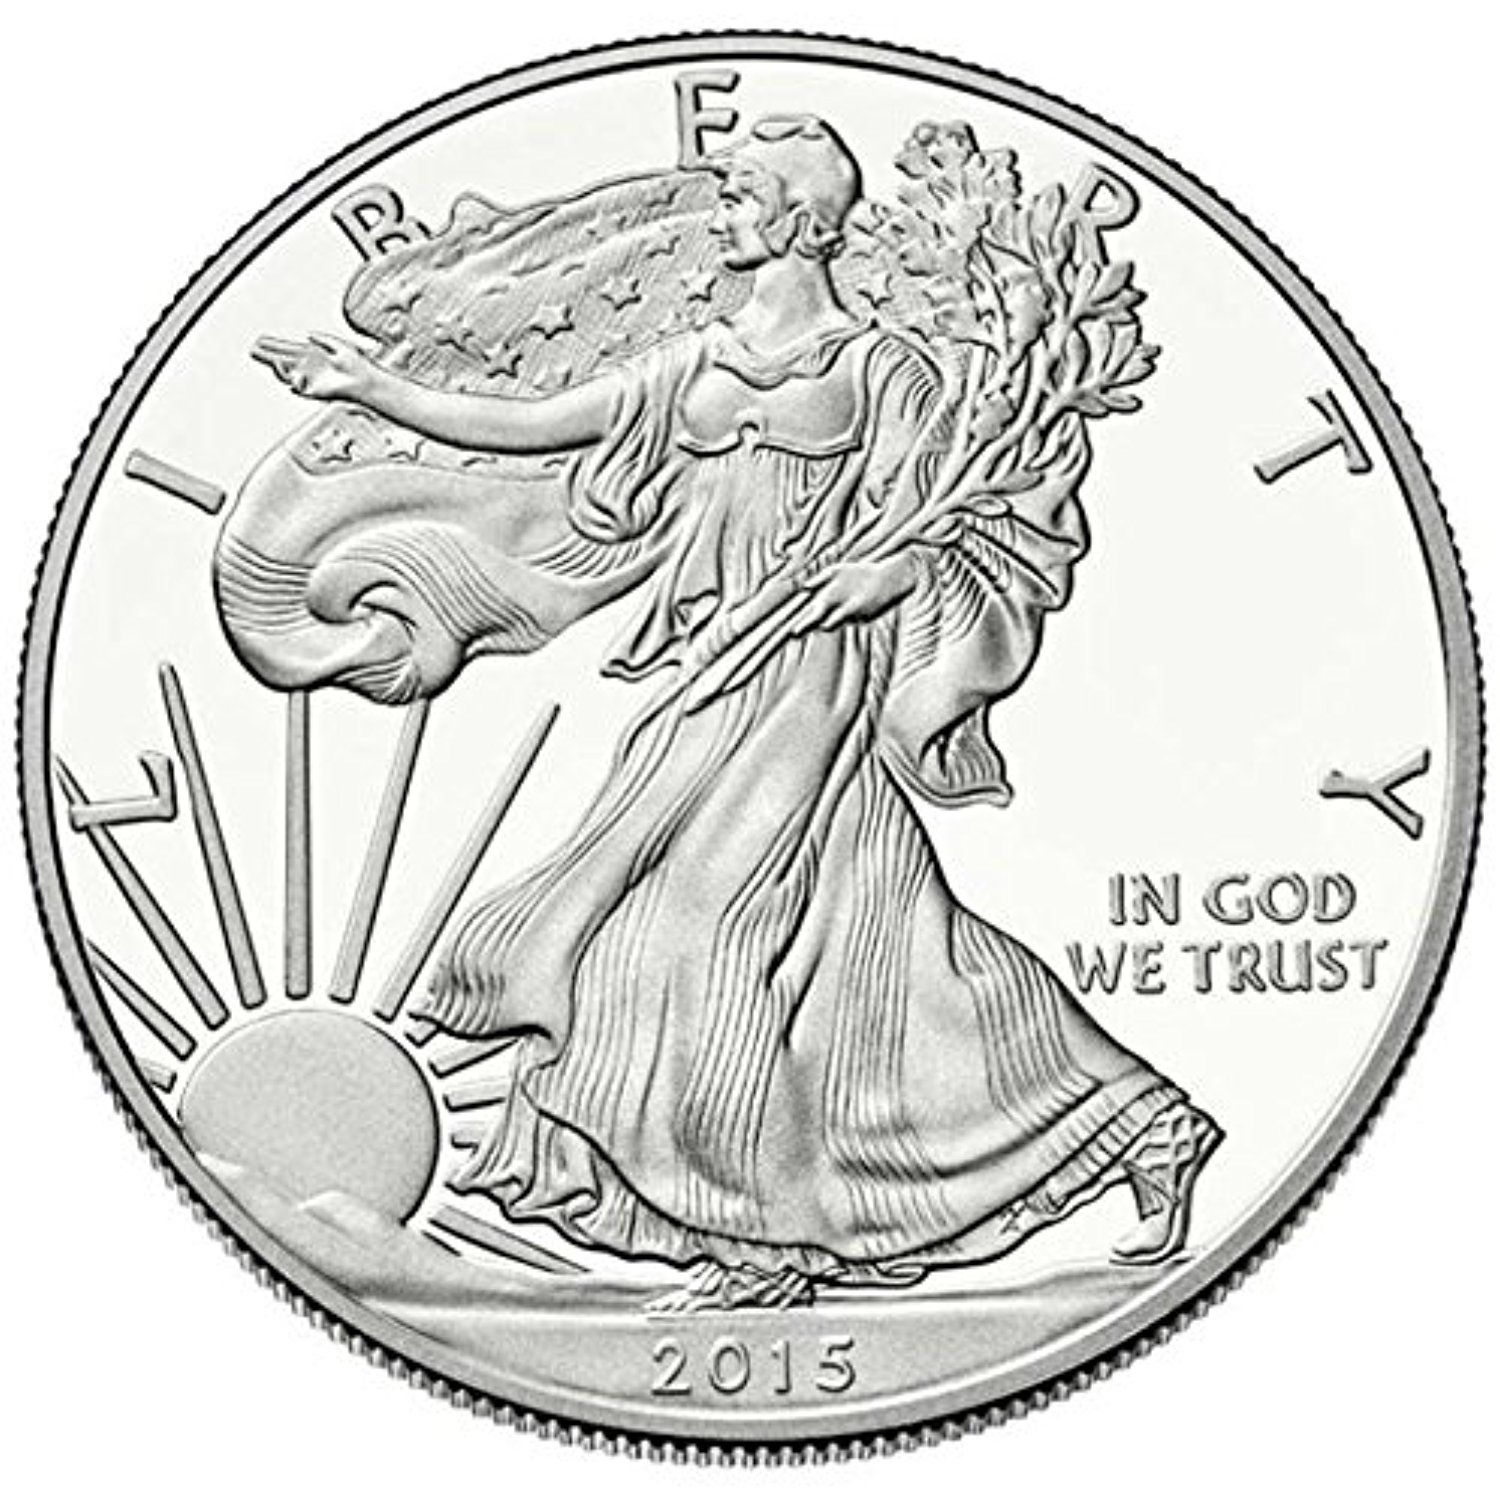 2015 1 Oz American Silver Eagle 999 Fine Silver Dollar Uncirculated Us Mint You Can Find Silver Eagle Coins American Silver Eagle Silver Bullion